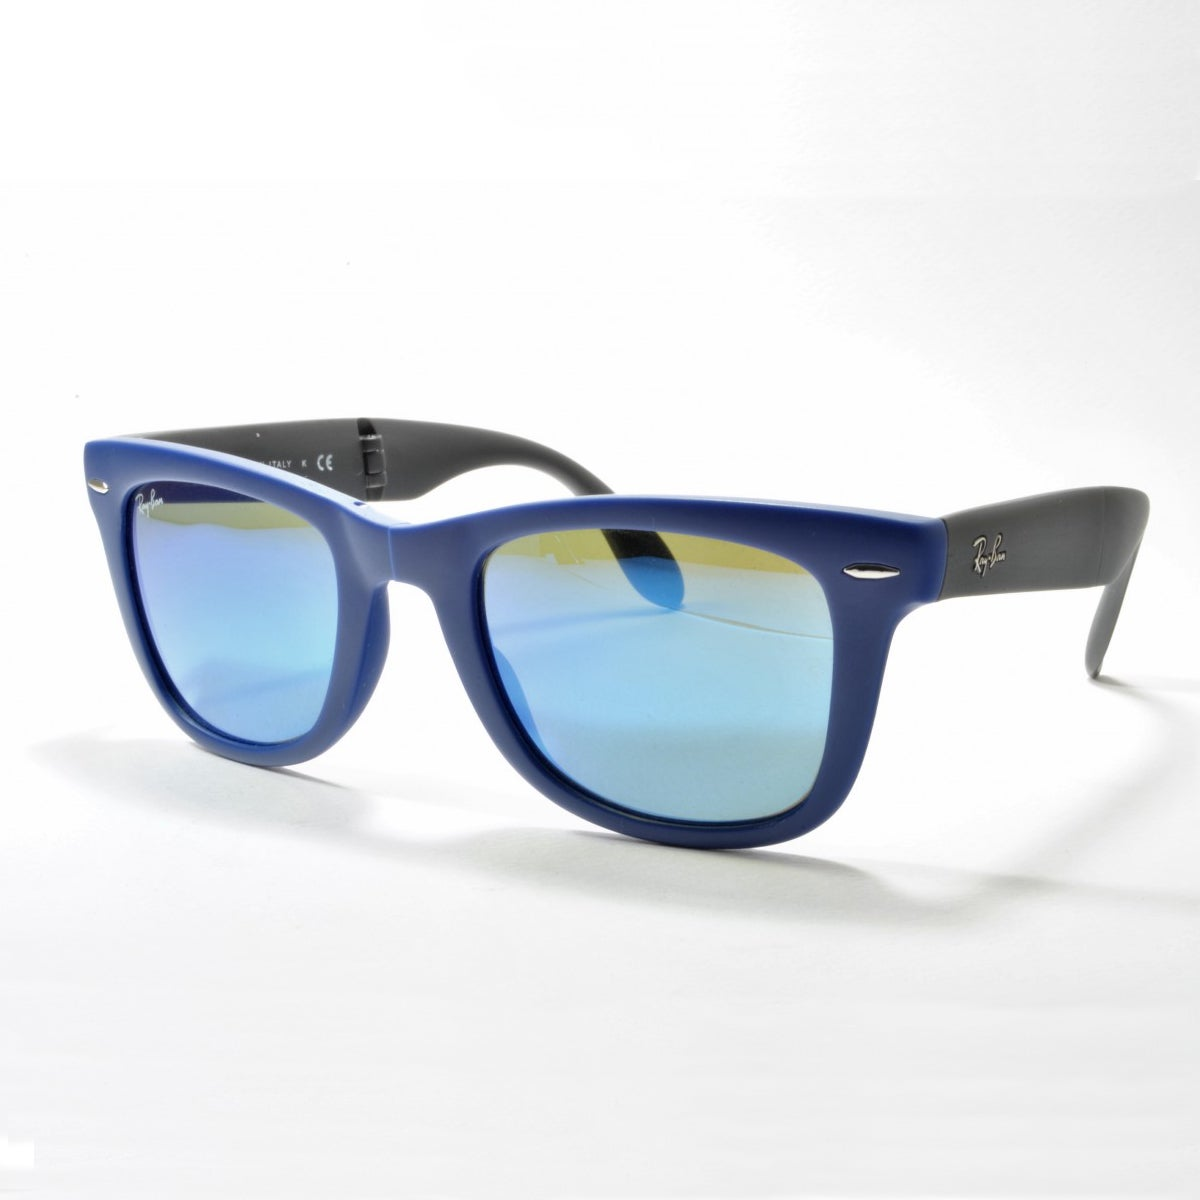 90c223d175 Shop Ray-Ban Wayfarer Folding Classic Sunglasses 54mm - Blue Frame Blue  Mirror Lens - Large - Free Shipping Today - Overstock - 9218916